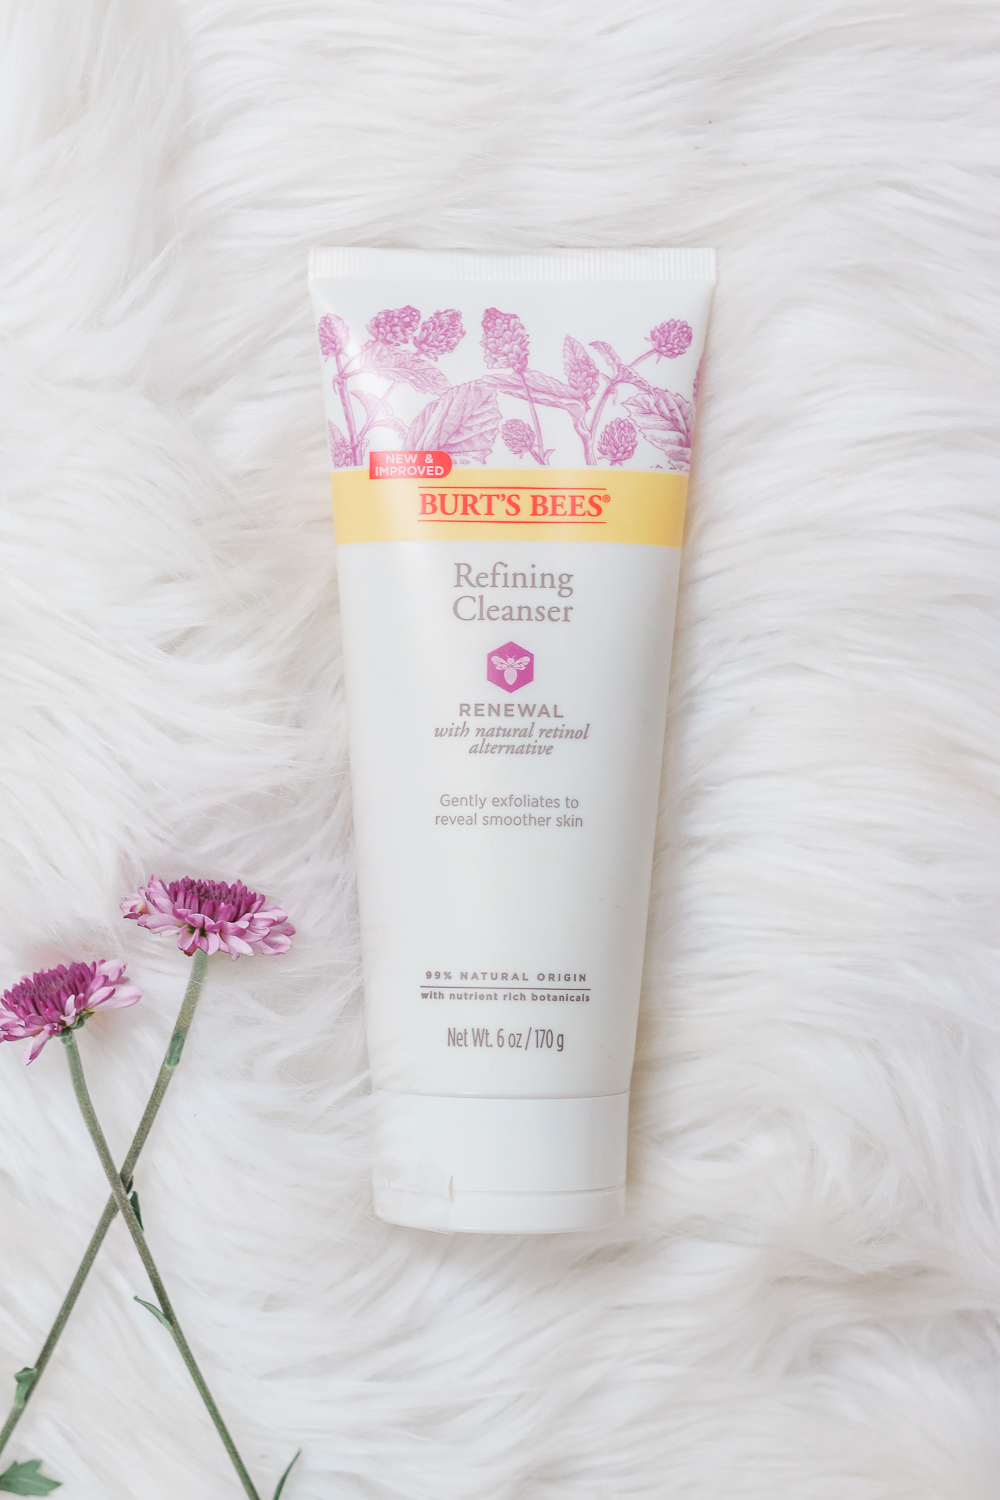 As part of a complete Burt's Bees Renewal skincare review, beauty blogger Stephanie Ziajka shares a Burt's Bees Renewal Cleanser review on Diary of a Debutante